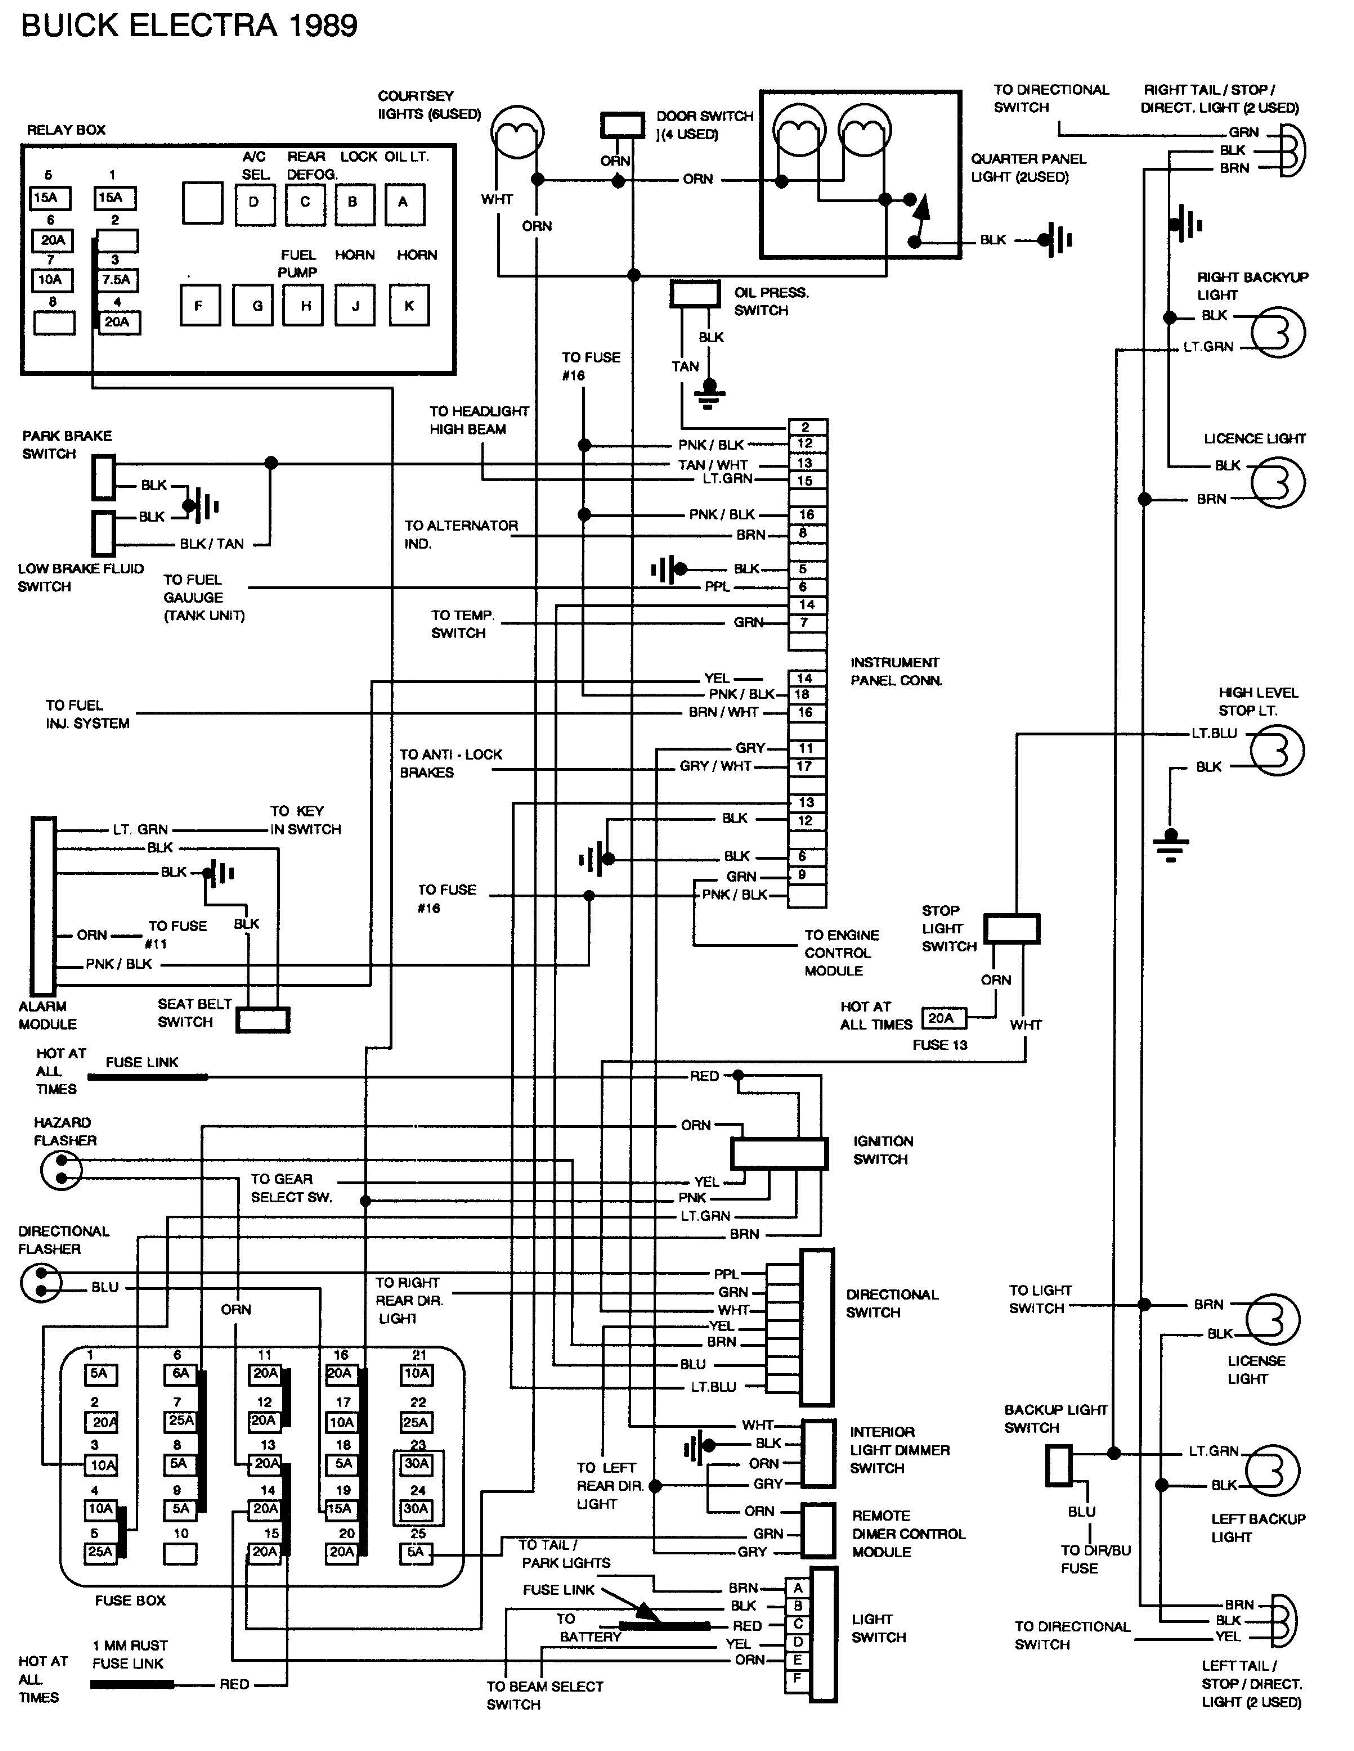 1998 buick century radio wiring diagram 2008 buick enclave radio wiring diagram i have a 1989 buick electra park avenue with a battery ...